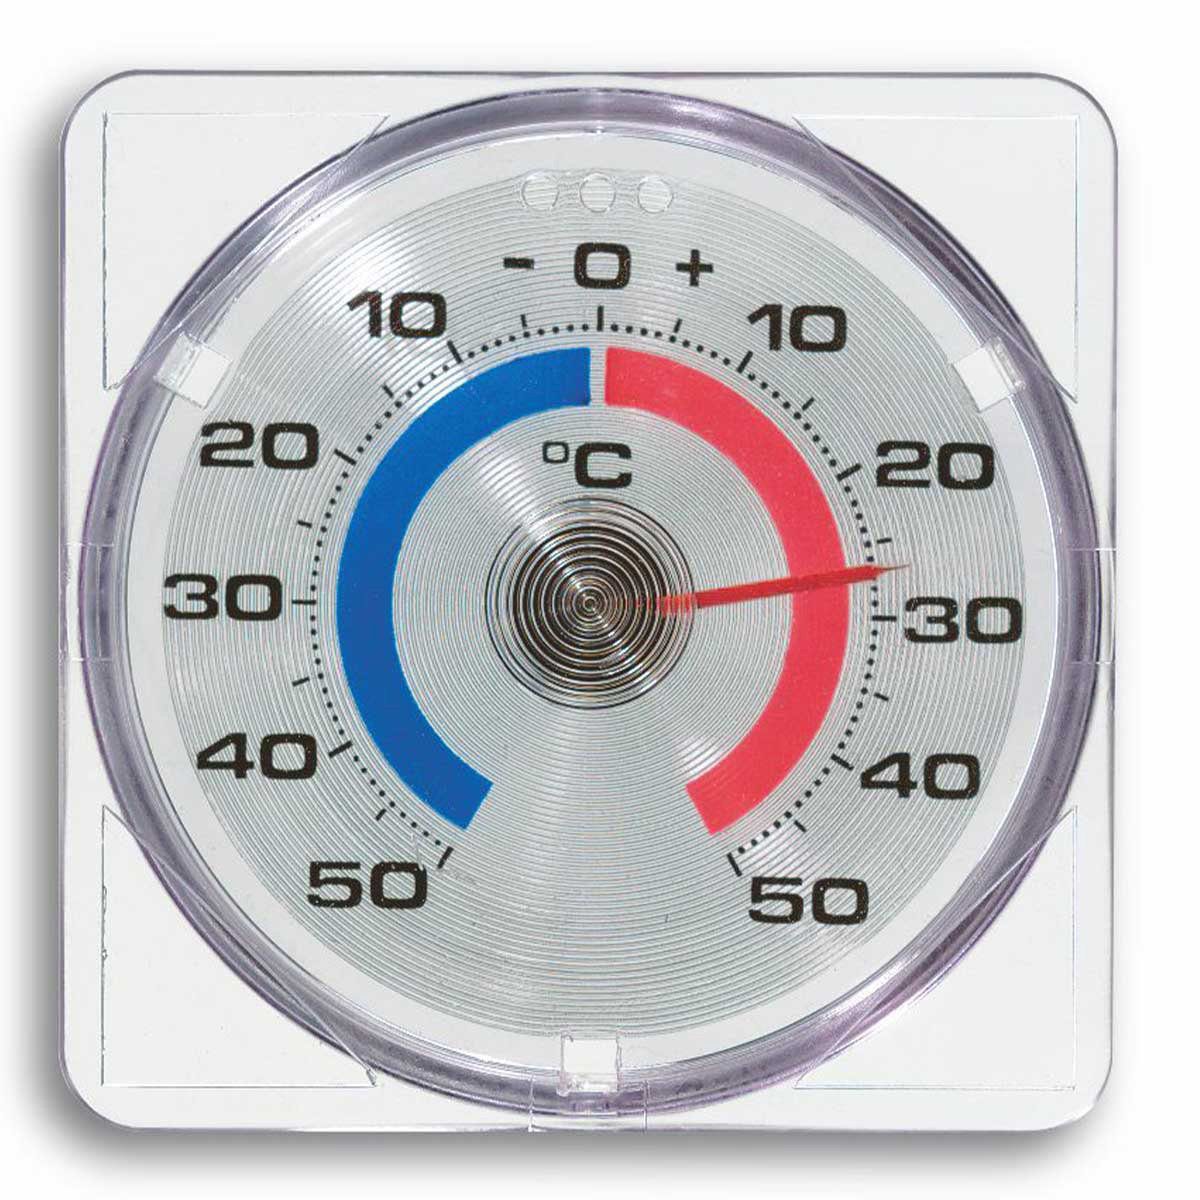 14-6001-analoges-fensterthermometer-1200x1200px.jpg